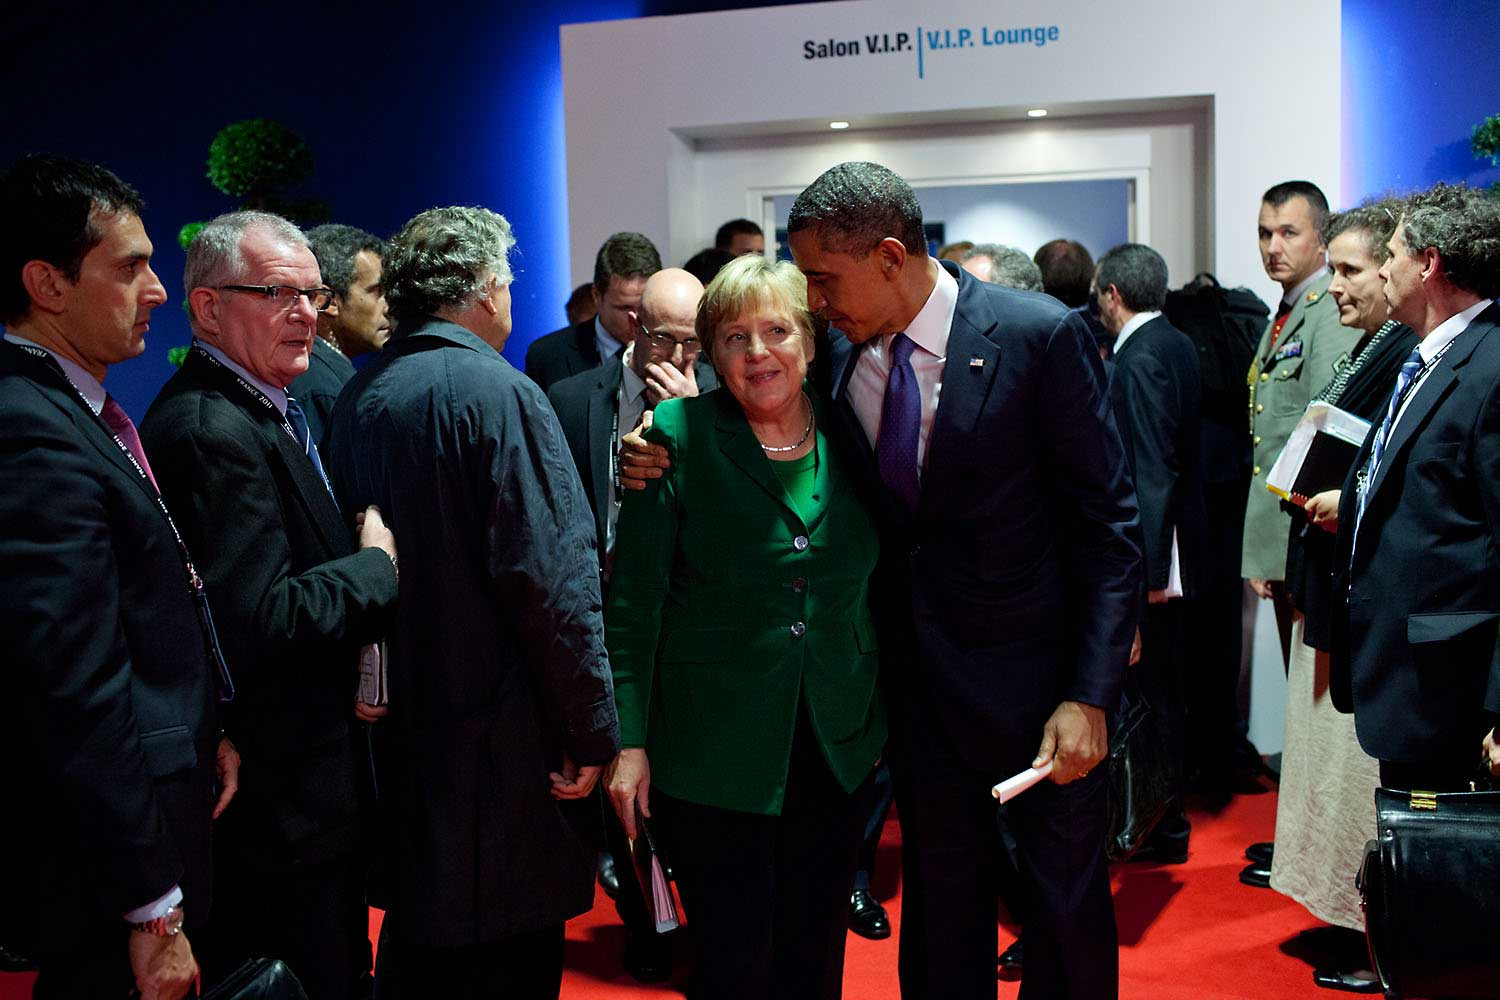 After a meeting with Eurozone leaders adjacent to the G20 Summit in Cannes, France, the President gave encouragement to German Chancellor Angela Merkel as they departed the meeting, Nov. 3, 2011.